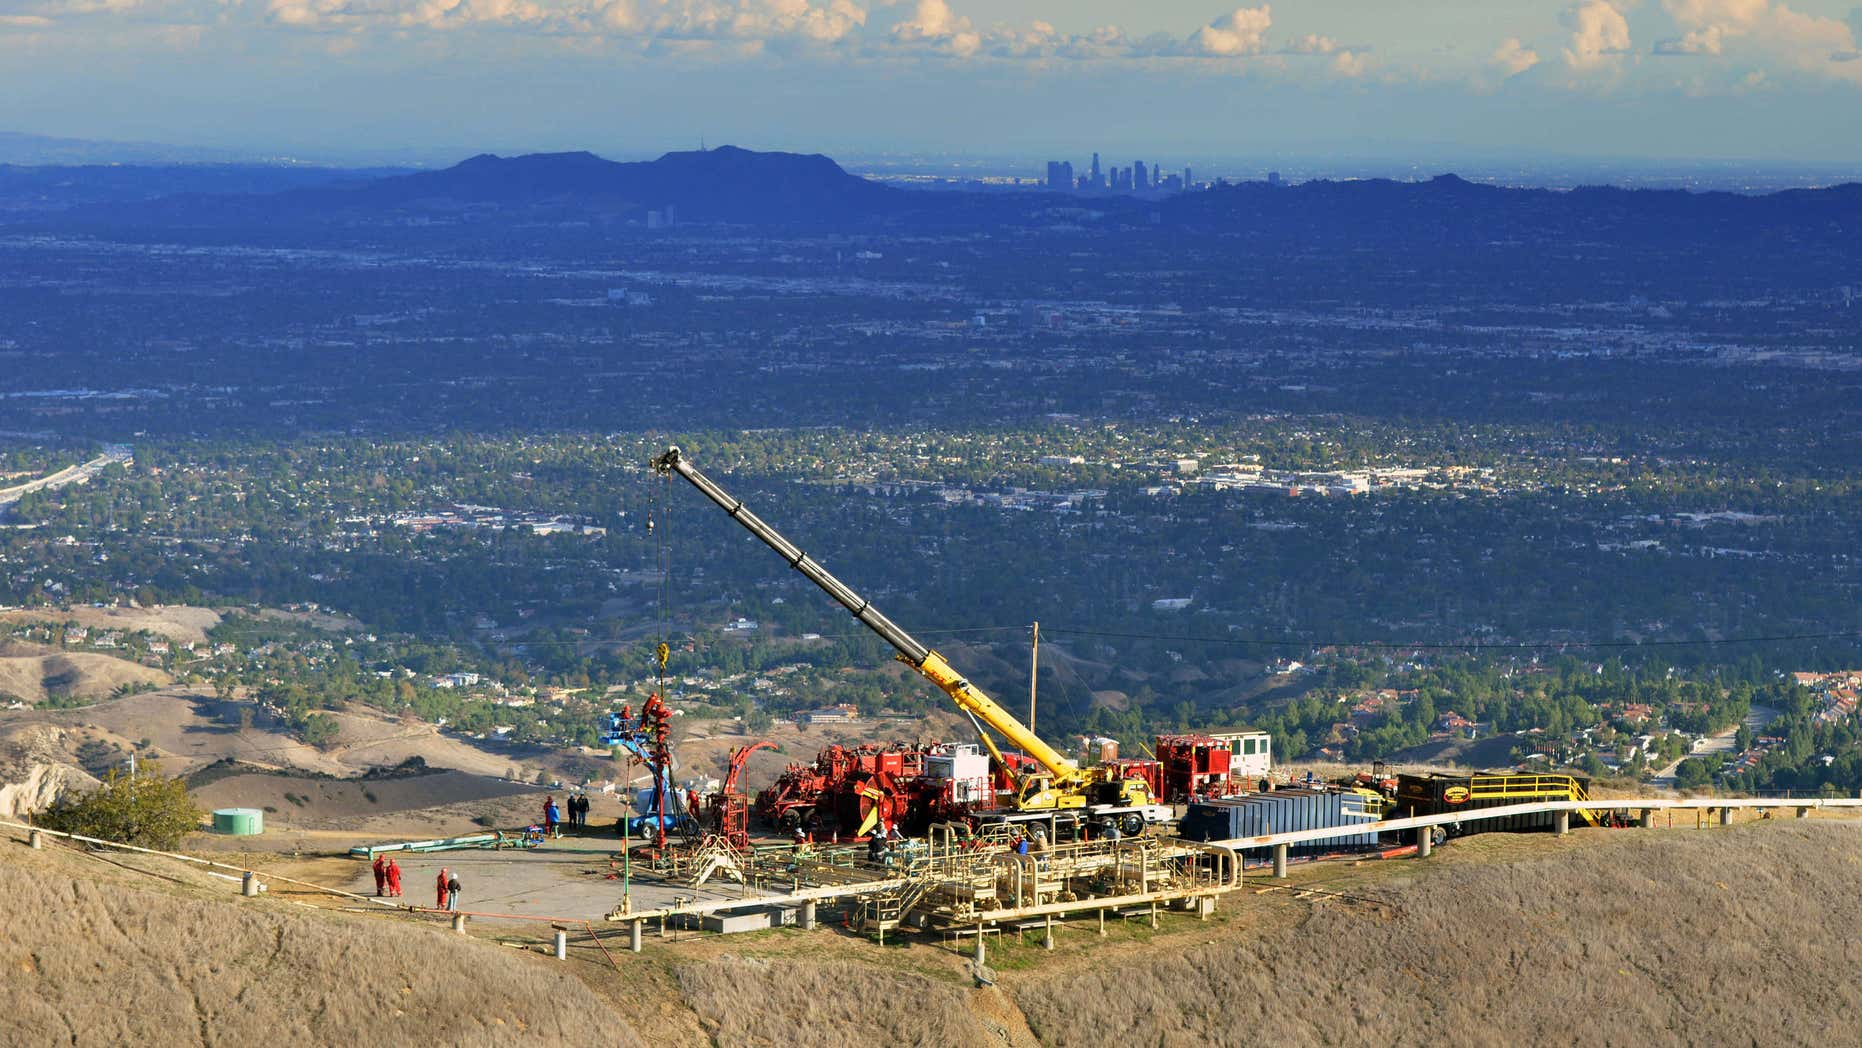 FILE - In this Nov. 3, 2015, file photo, provided by Southern California Gas Co. shows equipment being used as SoCalGas crews and technical experts try to stop the flow of natural gas leaking from a storage well at the utility's Aliso Canyon facility near the Northridge section of Los Angeles.